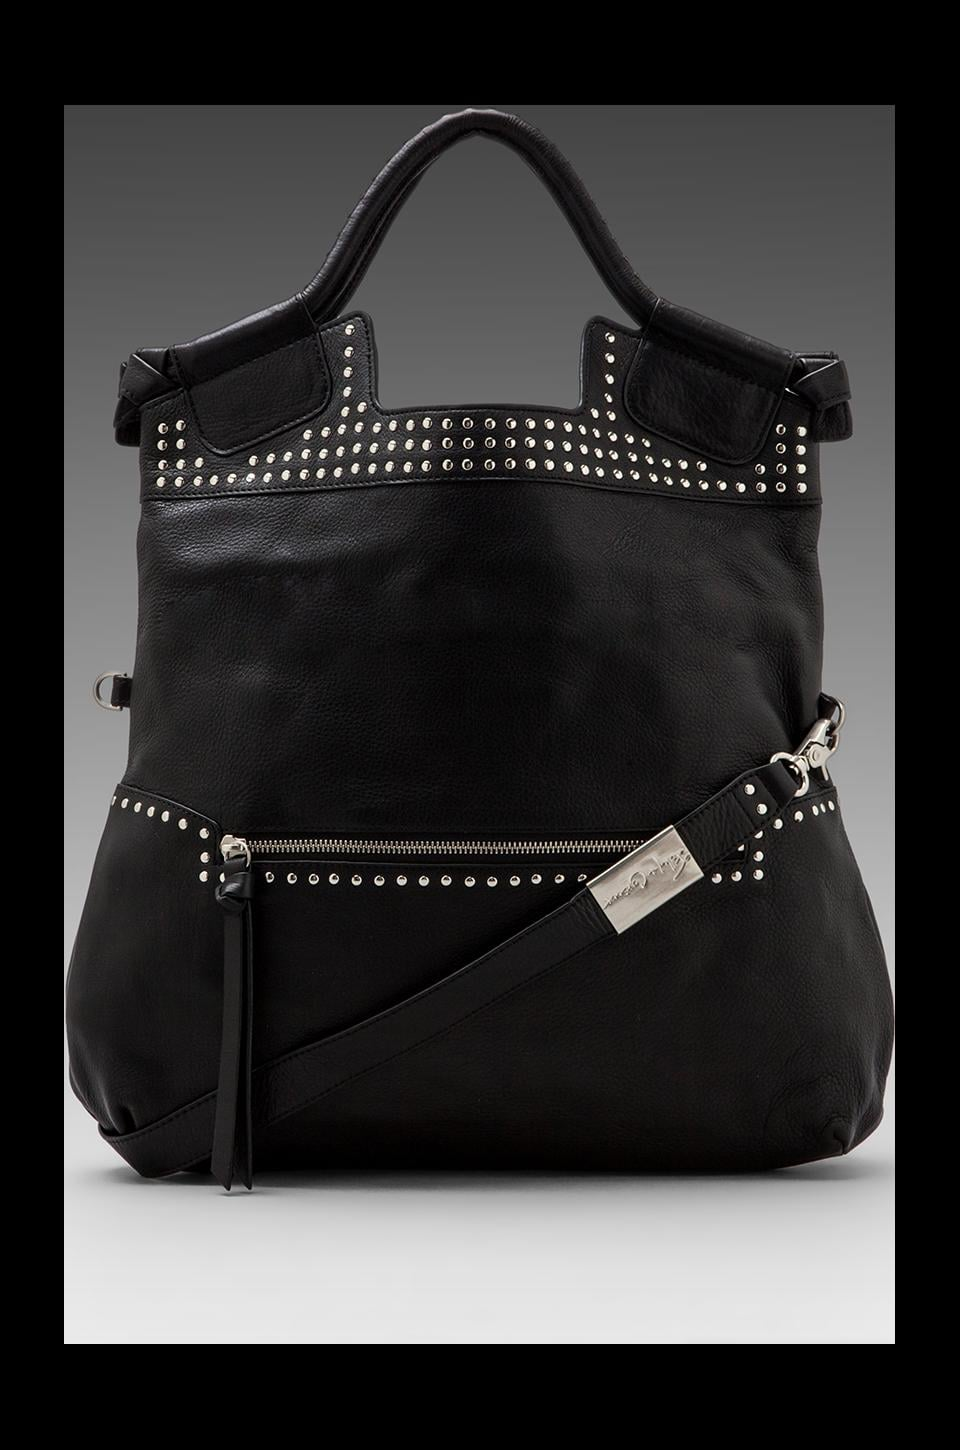 Foley + Corinna Moto City Bag in Black